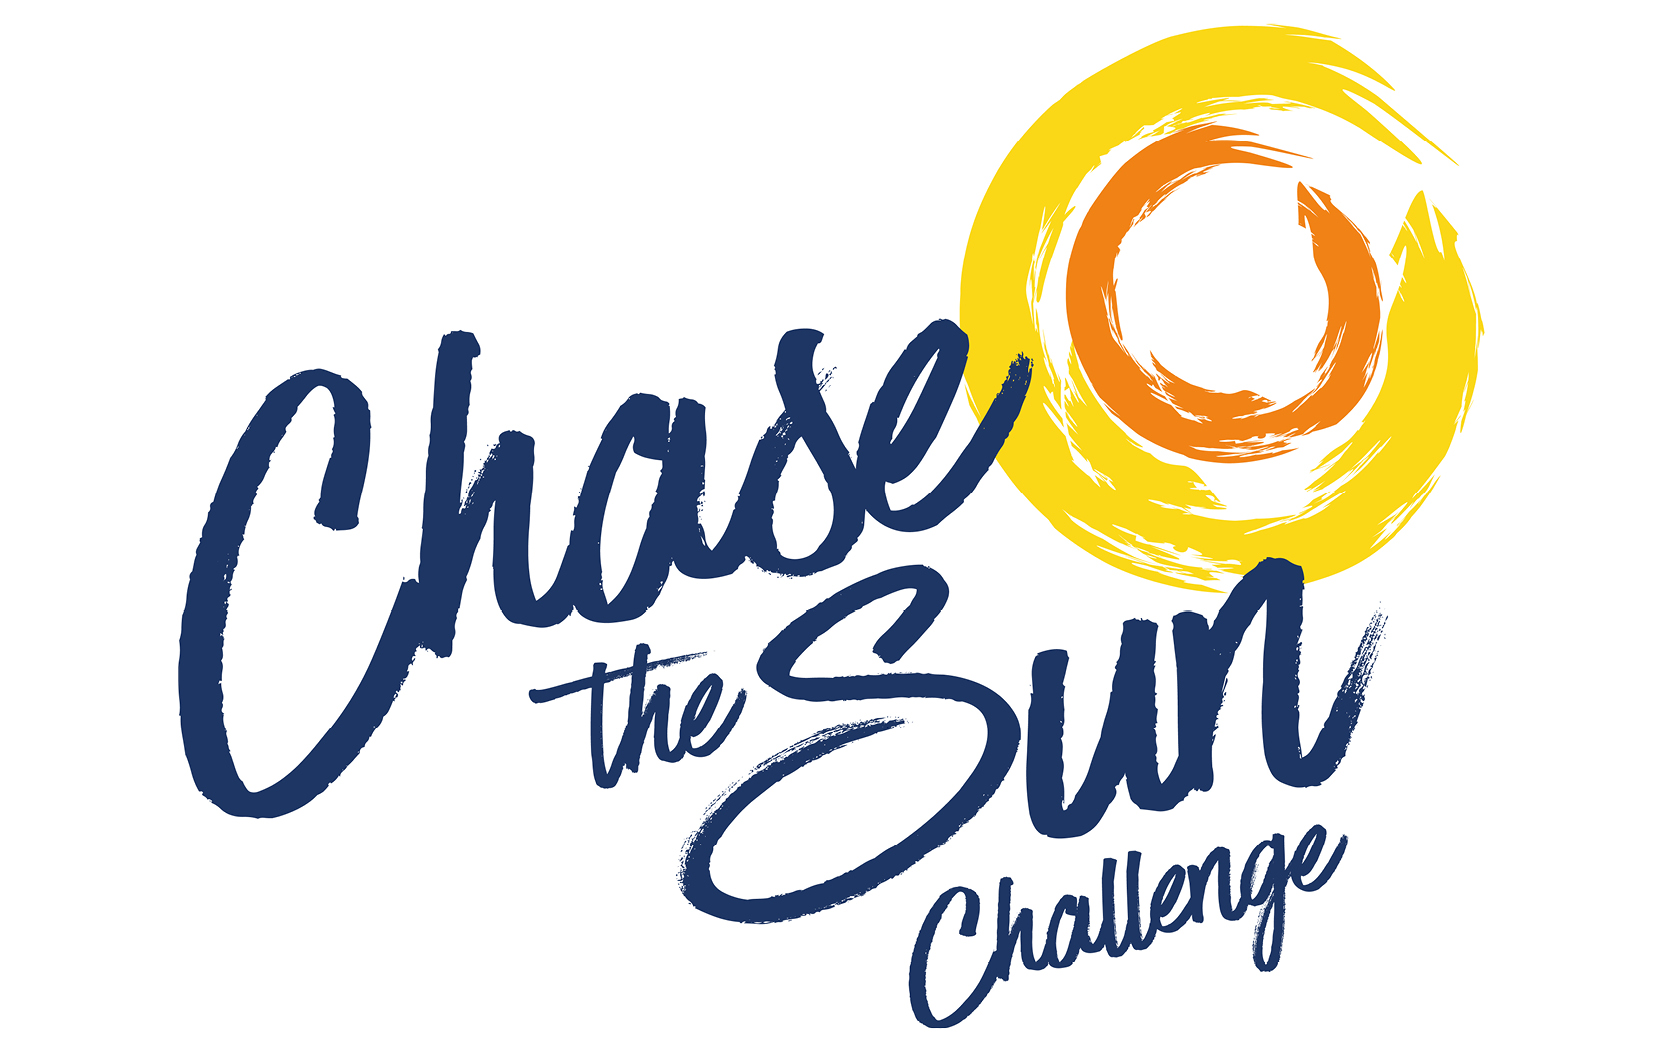 Chase The Sun Challenge